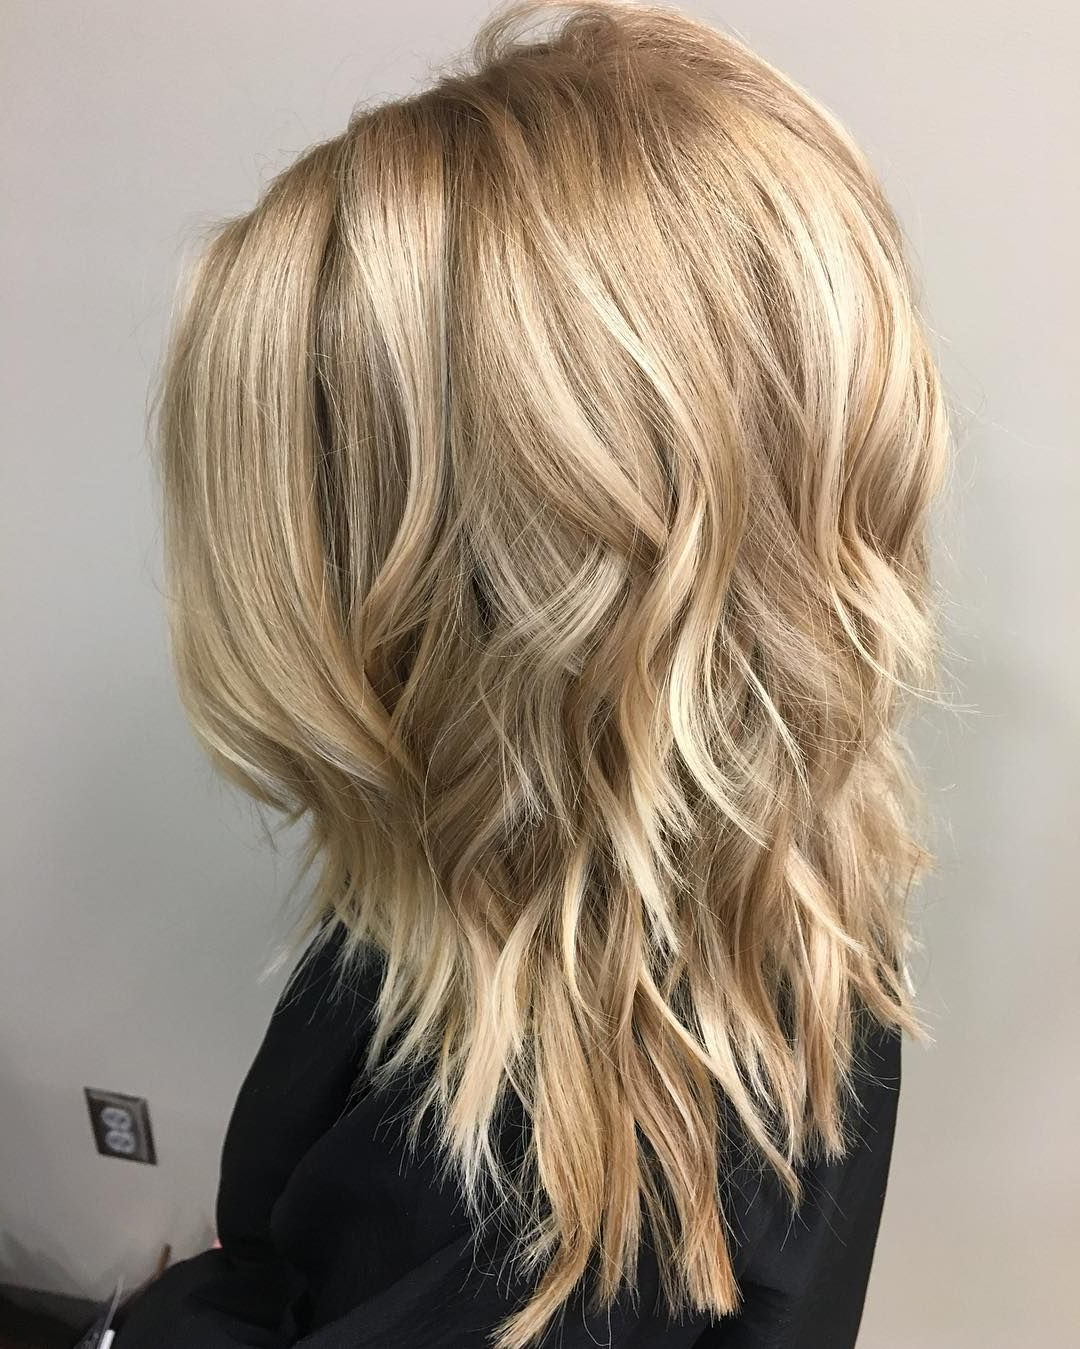 Fashionable Medium Haircuts Layered With Regard To Medium Hairstyle : Short Medium Length Layered Hairstyles Bangs (View 8 of 20)